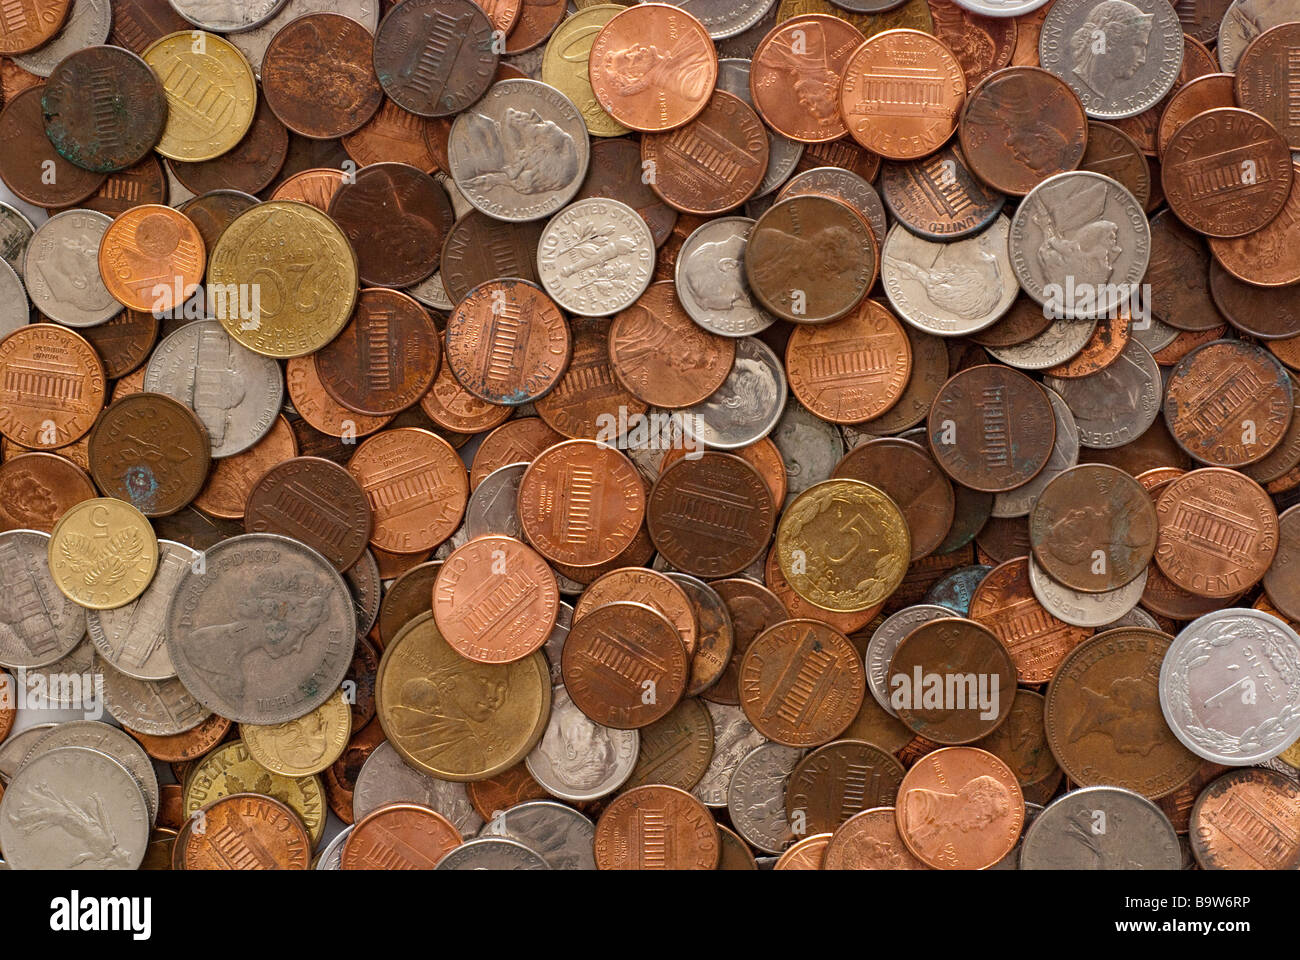 a layer of coins of multiple currencies - Stock Image